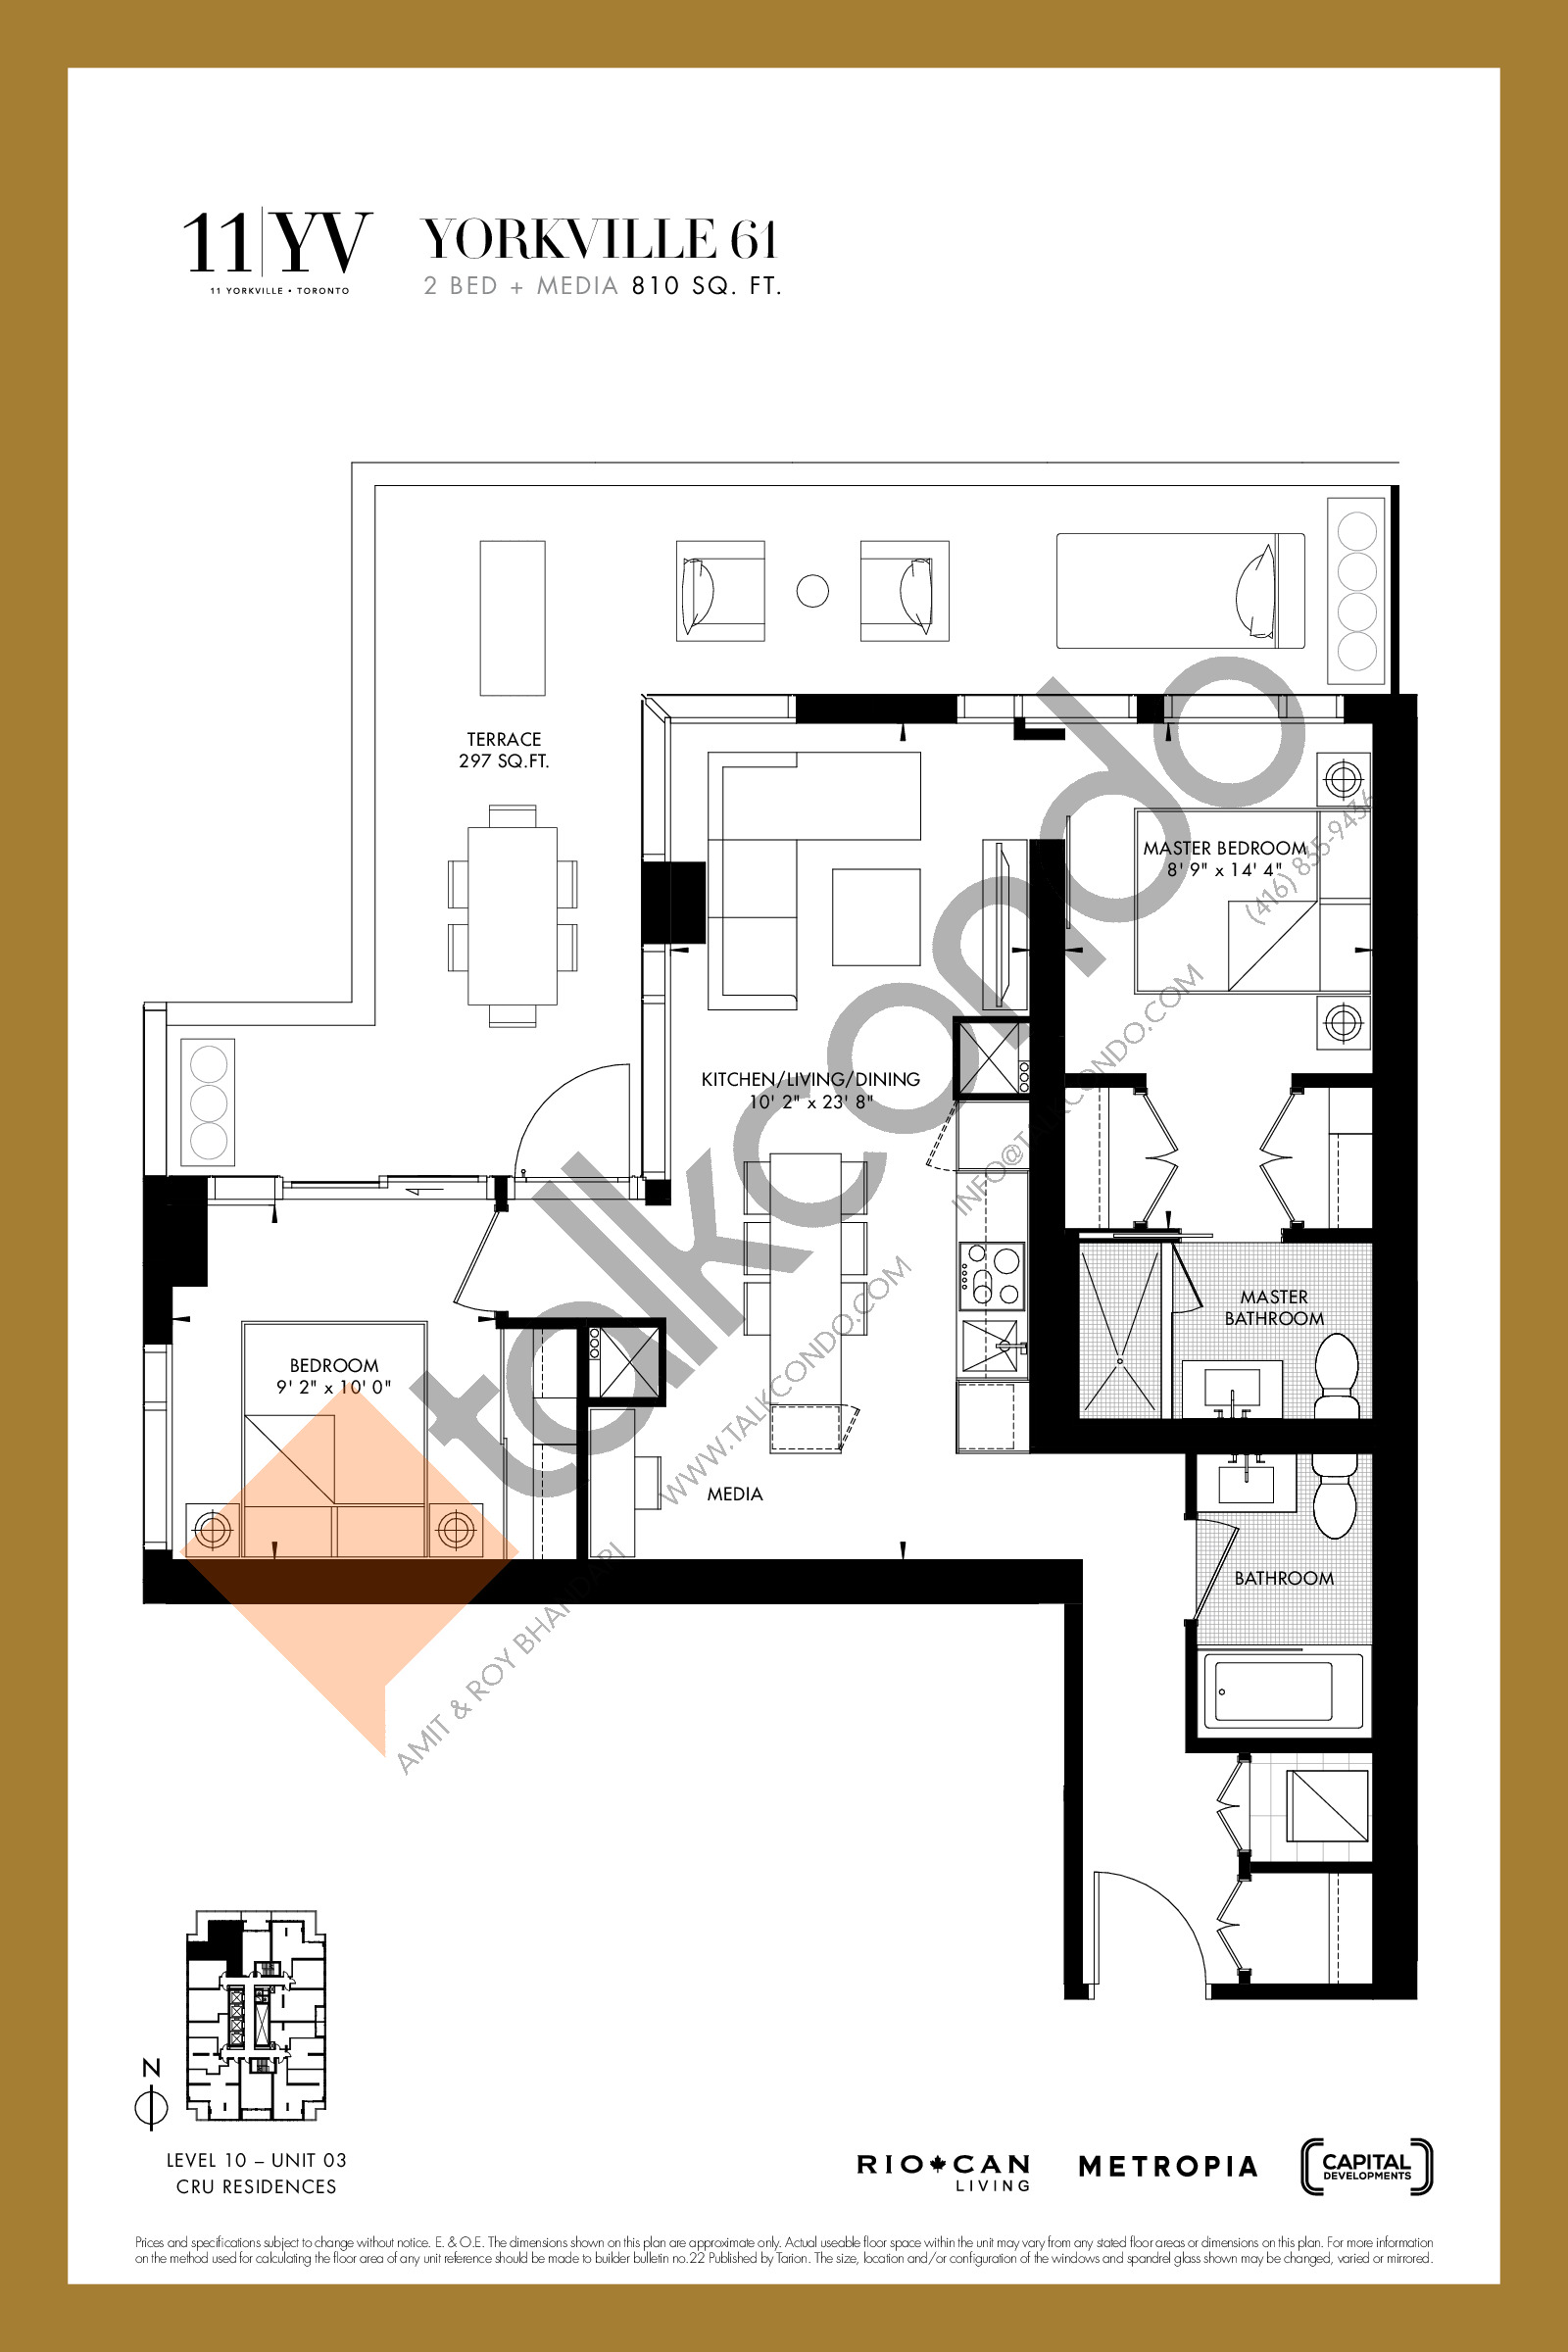 Yorkville 61 Floor Plan at 11YV Condos - 810 sq.ft